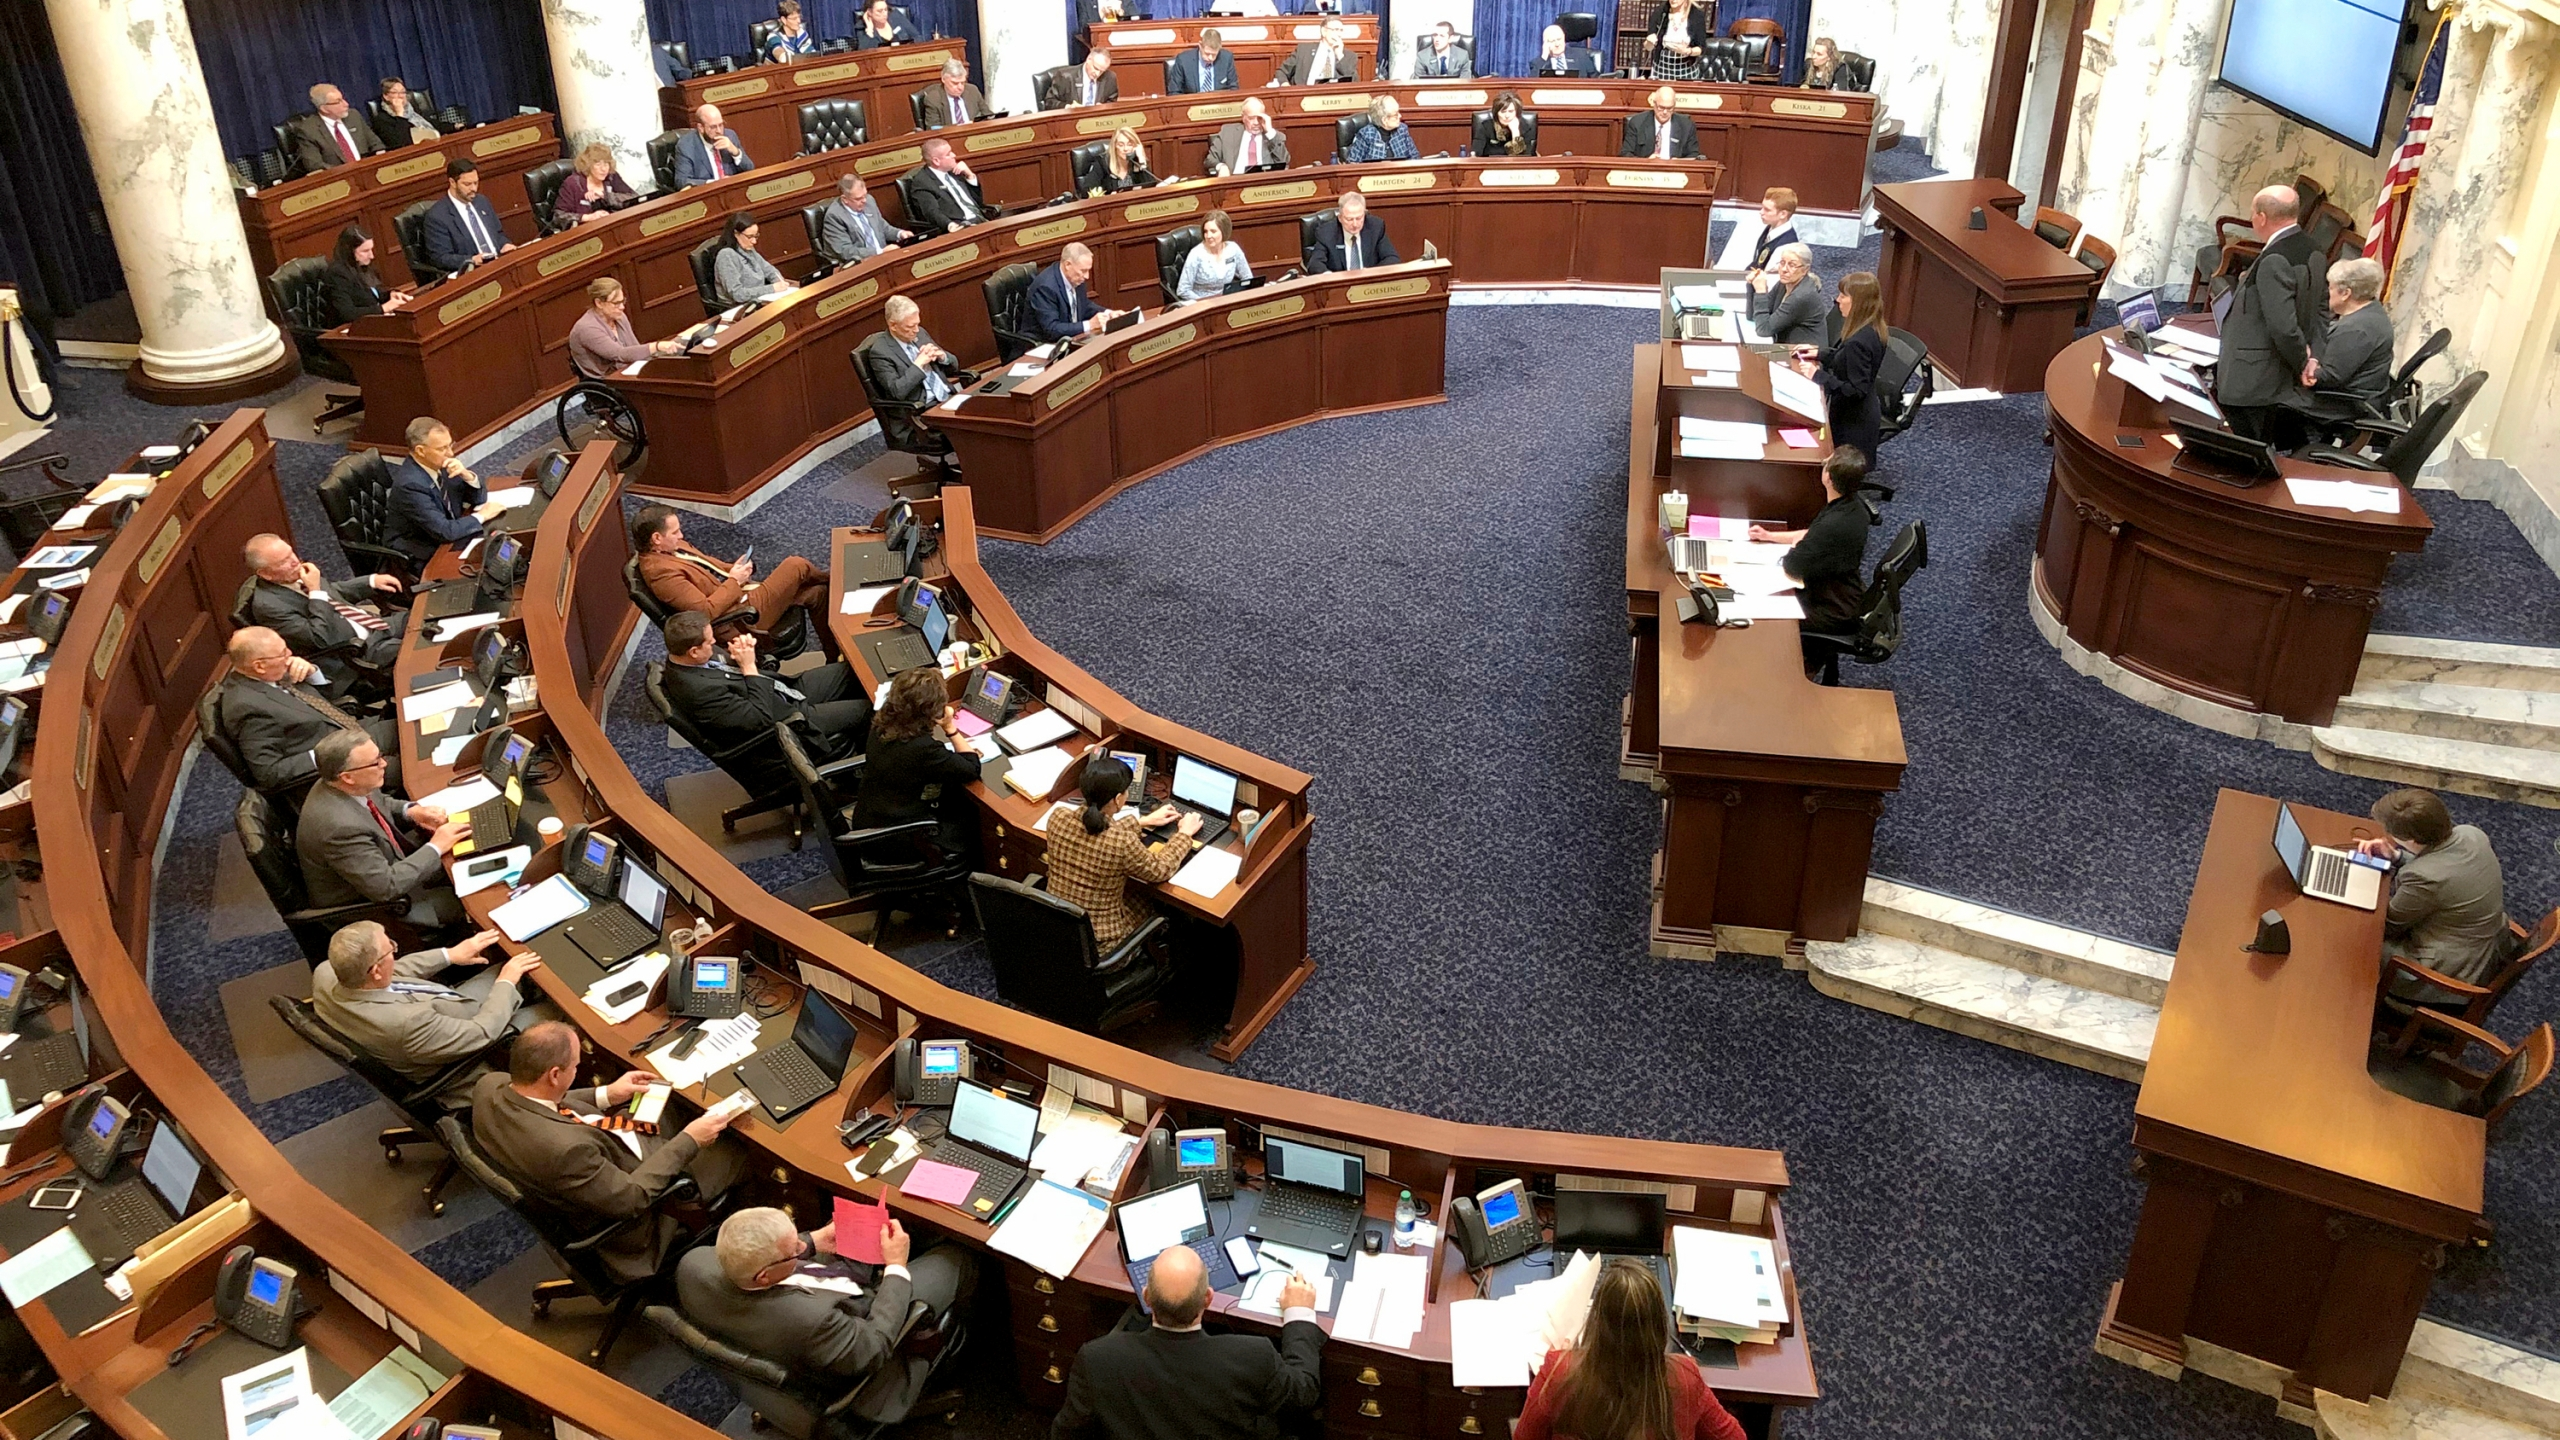 In this Feb. 27, 2020, file photo, Idaho House of Representatives debates legislation in the Idaho Statehouse in Boise, Idaho. Idaho lawmakers moved forward with legislation banning transgender people from changing the sex listed on their birth certificates despite a federal court ruling declaring such a ban unconstitutional. An appeals court on Monday, May 3, 2021, will consider the constitutionality of the first law in the nation banning transgender women and girls from playing on women's sports teams. The 9th U.S. Circuit Court of Appeals will hear arguments in the case that will likely have far-ranging consequences as more states follow conservative Idaho's lead. (AP Photo/Keith Ridler, File)